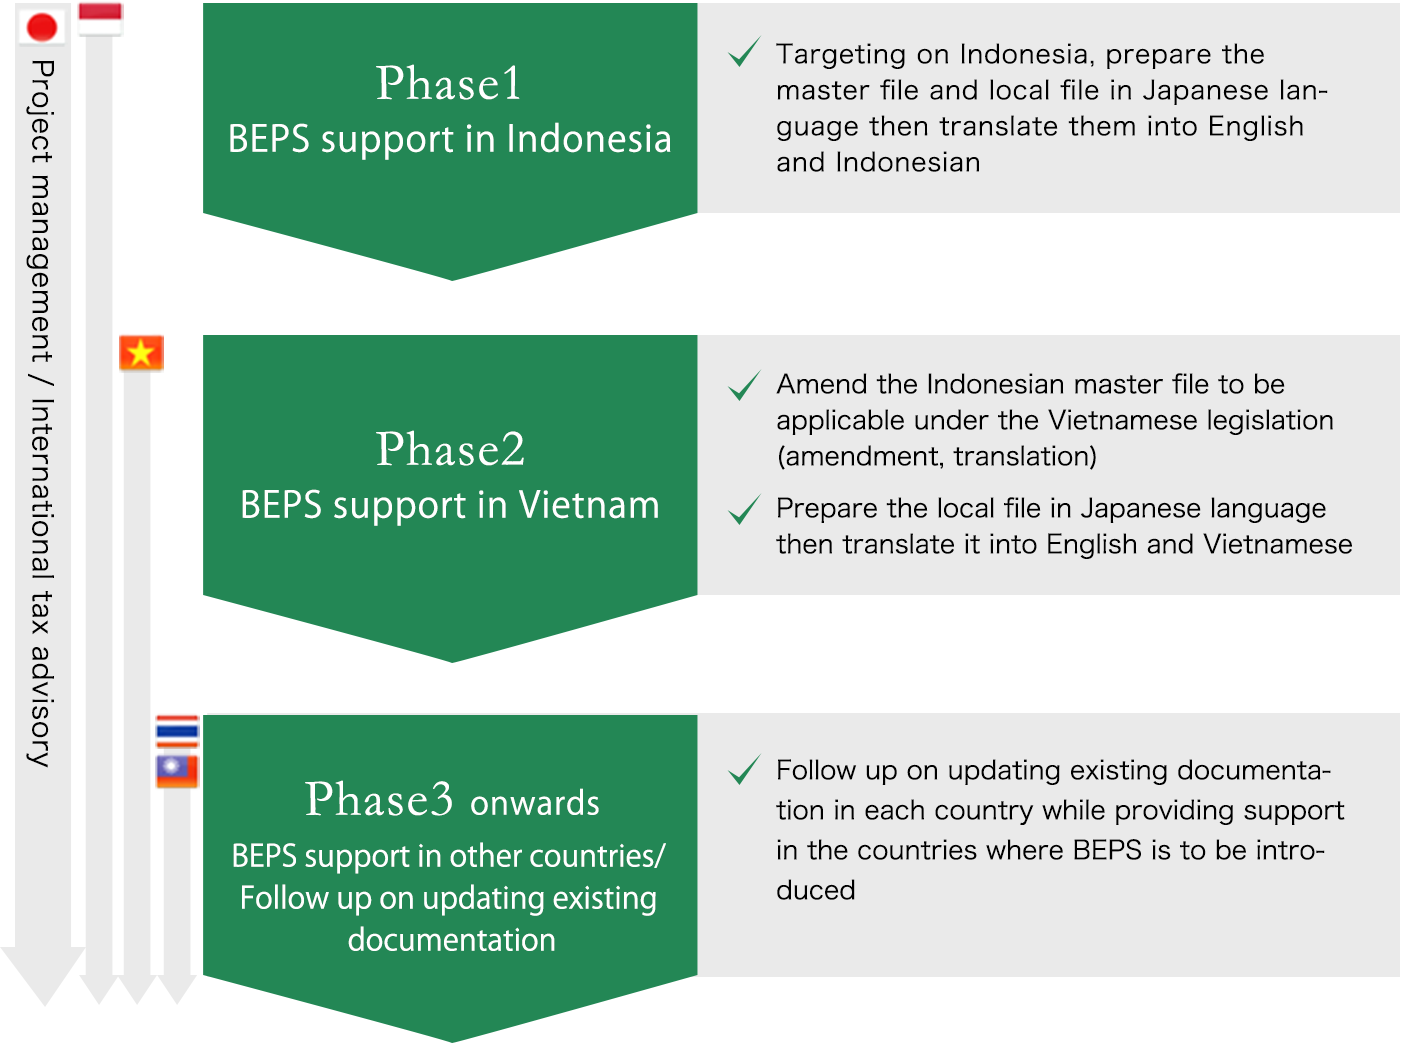 Phase1 :BEPS support in Indonesia Targeting on Indonesia, prepare the master file and local file in Japanese language then translate them into English and Indonesian Phase2 :BEPS support in Vietnam Amend the Indonesian master file to be applicable under the Vietnamese legislation (amendment, translation) Prepare the local file in Japanese language then translate it into English and Vietnamese Phase3 onwards : BEPS support in other countries/ Follow up on updating existing documentation Follow up on updating existing documentation in each country while providing support in the countries where BEPS is to be introduced